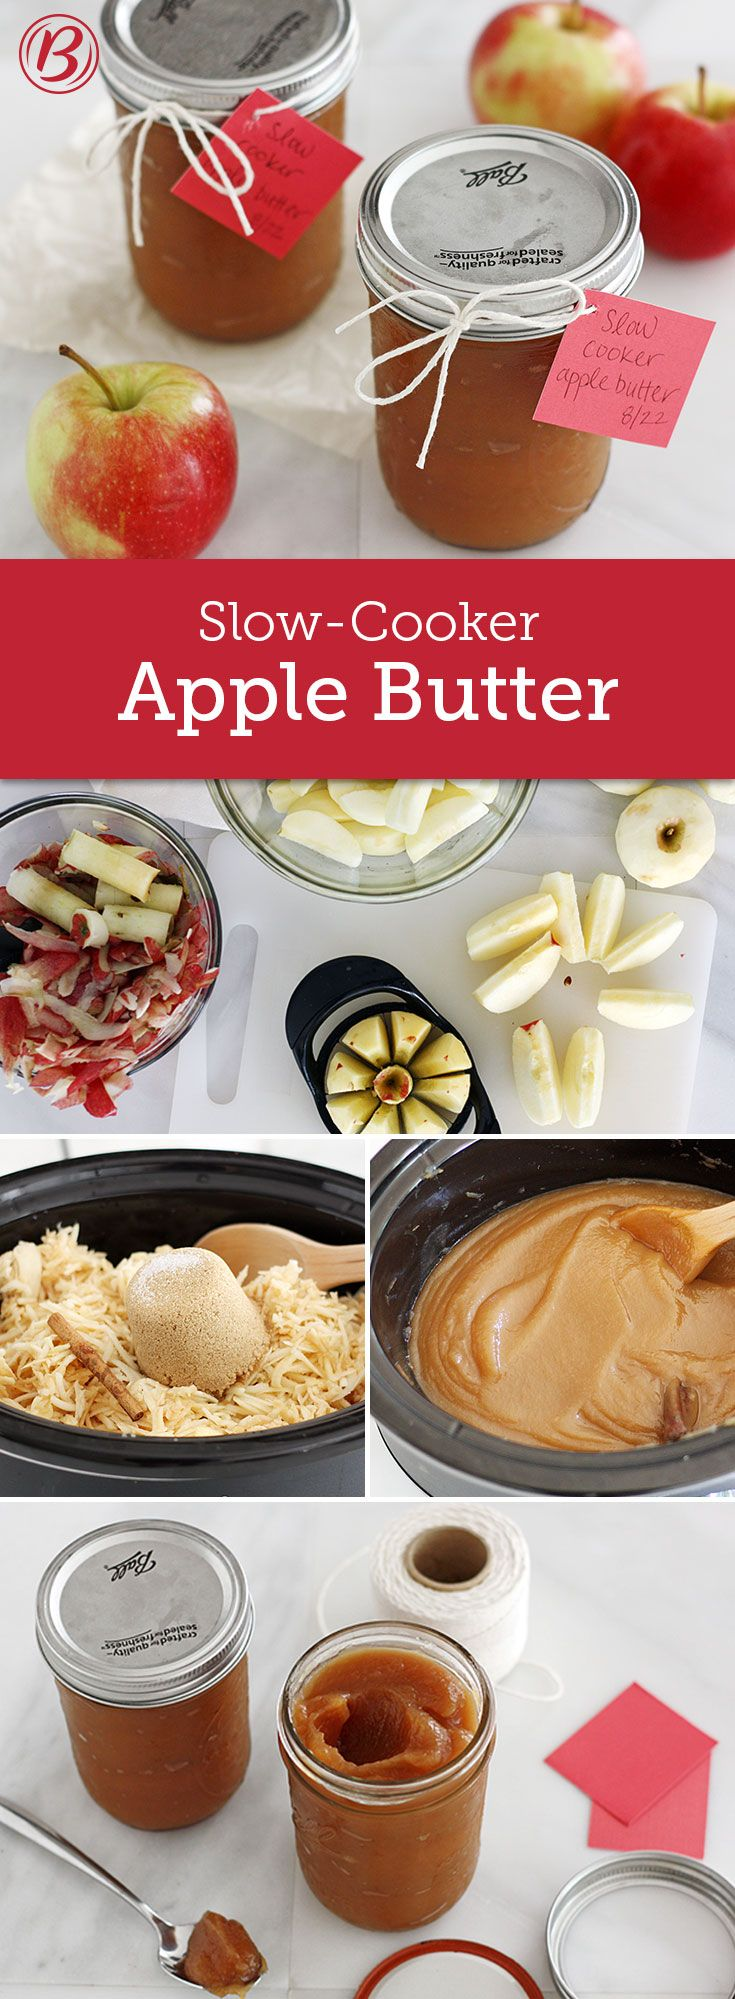 All you need are apples, brown sugar, salt and a cinnamon stick to make our velvety slow-cooker apple butter. Great for gifting!